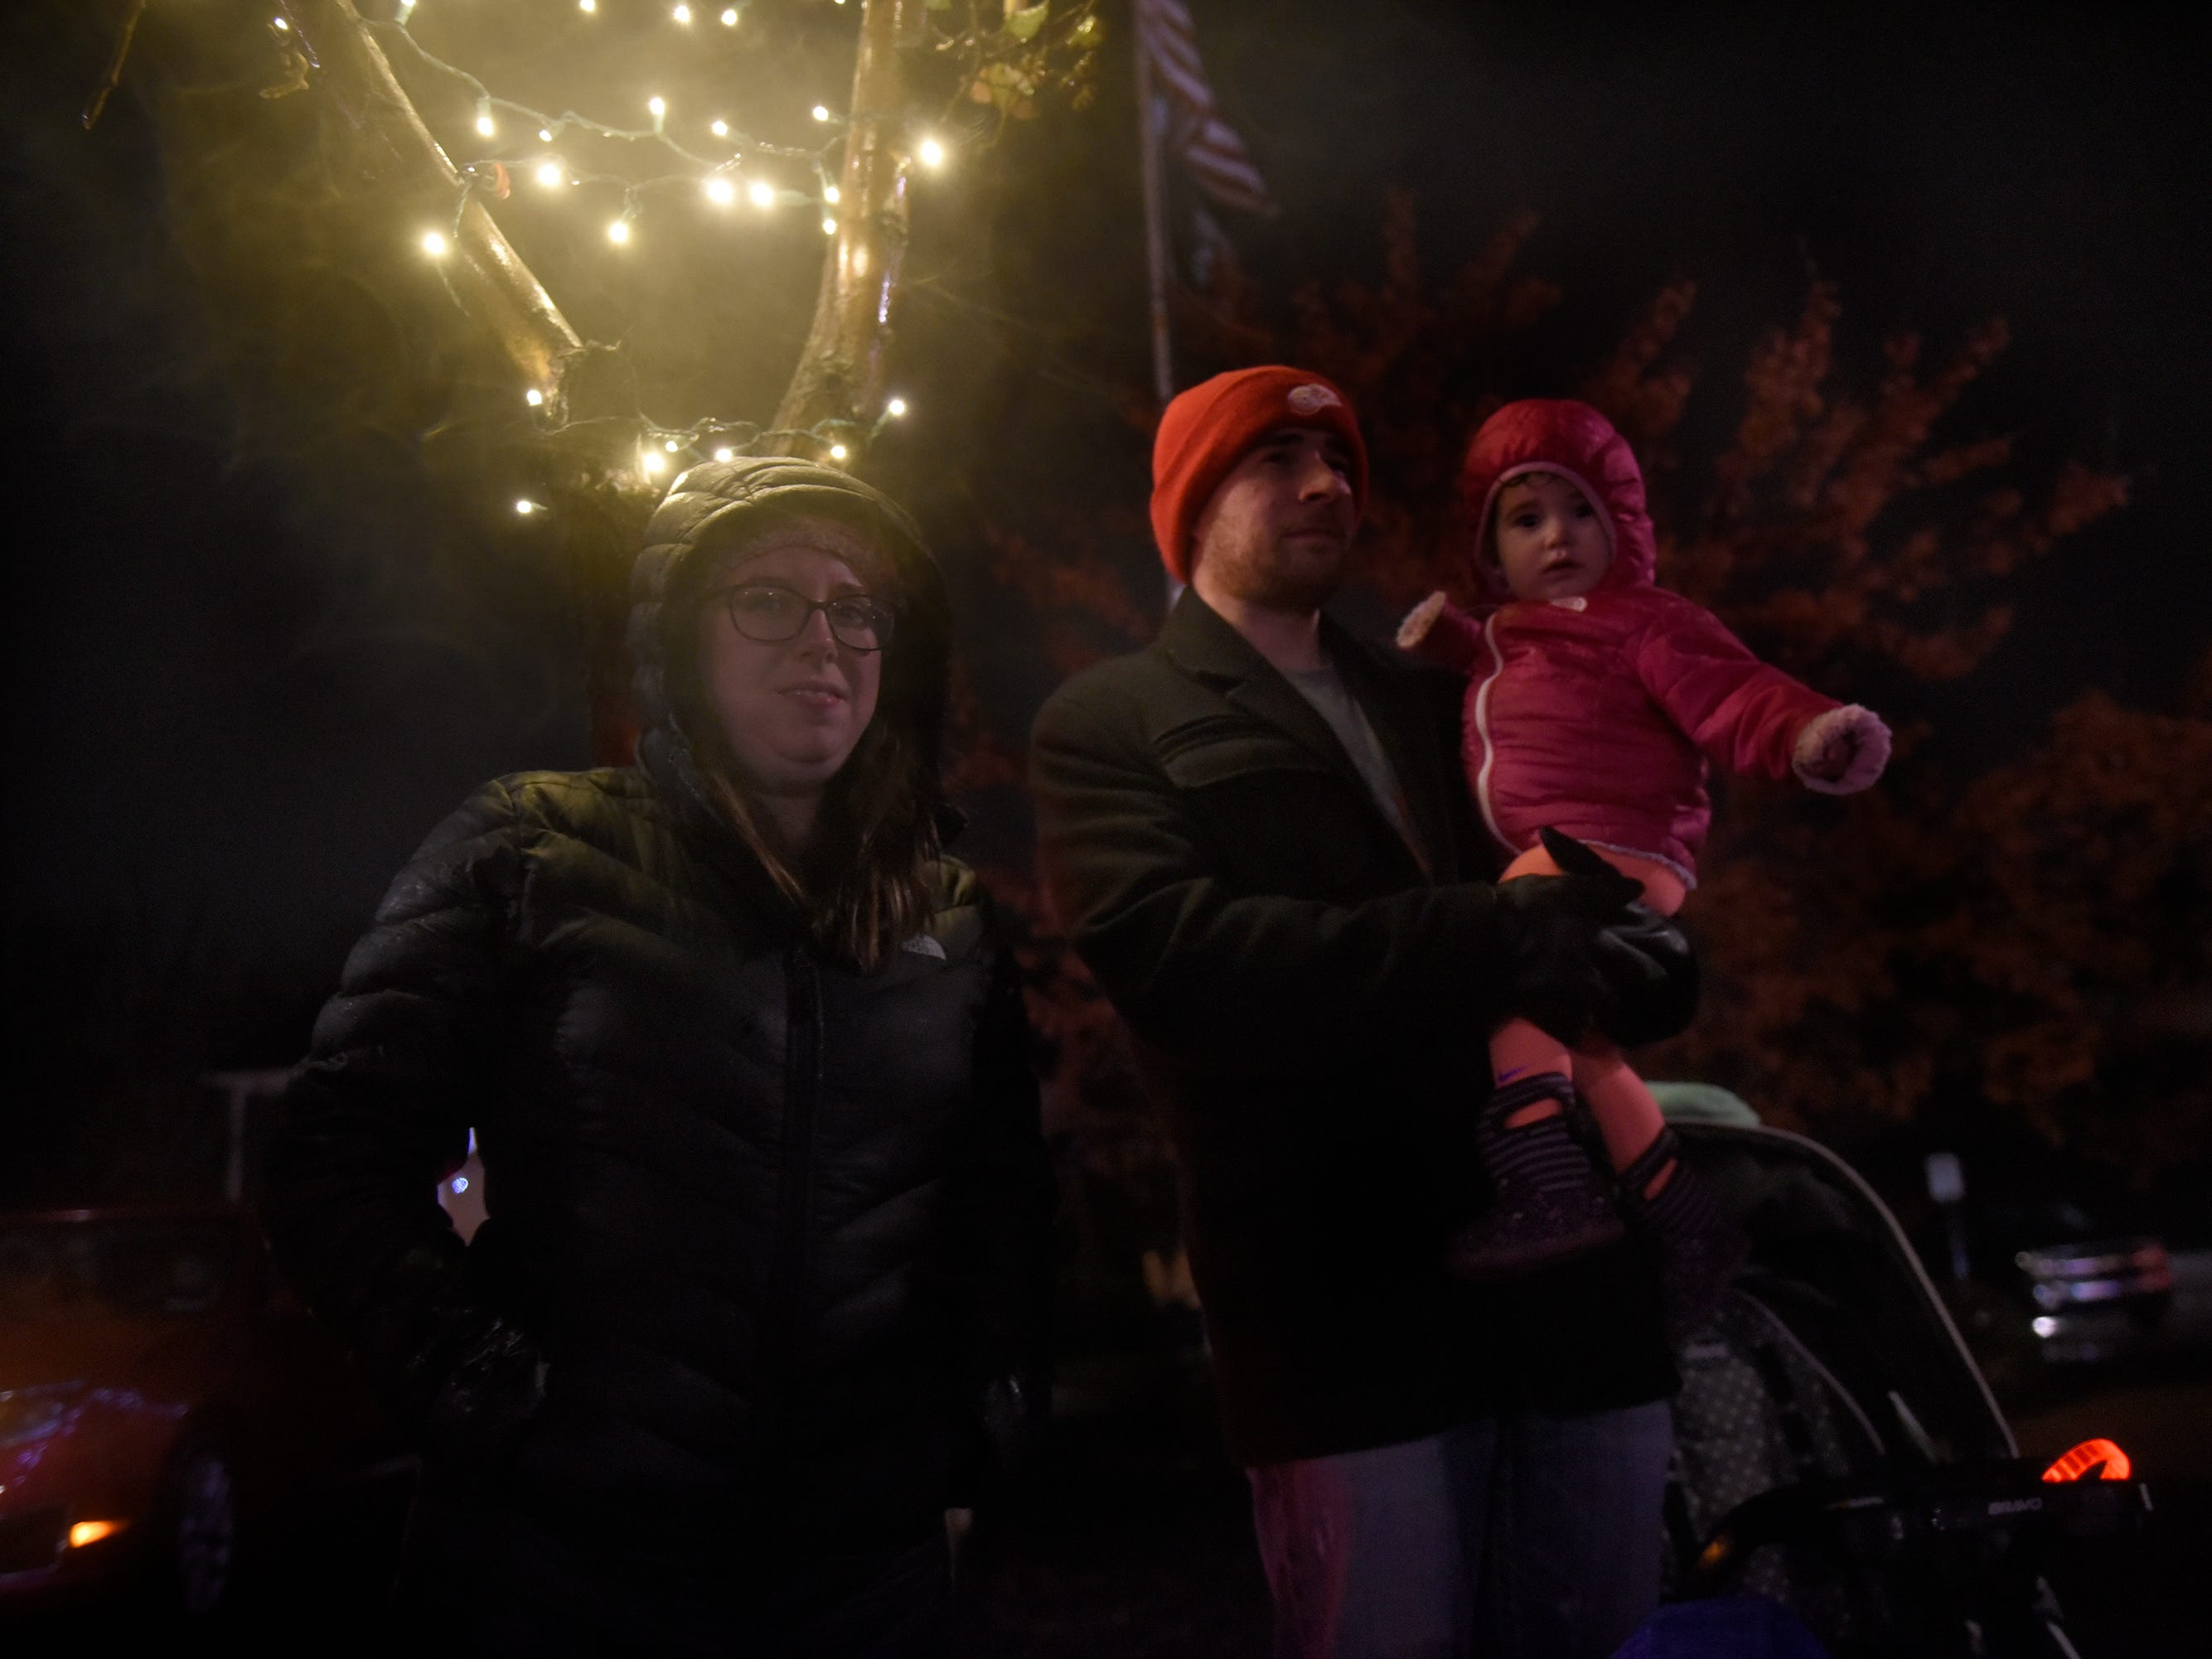 The Echlin family - Jessica (left), Sean and Amylia, 17 months, watch the Lighted Parade during South Lyon's Cool Yule celebration Dec. 1, 2018.